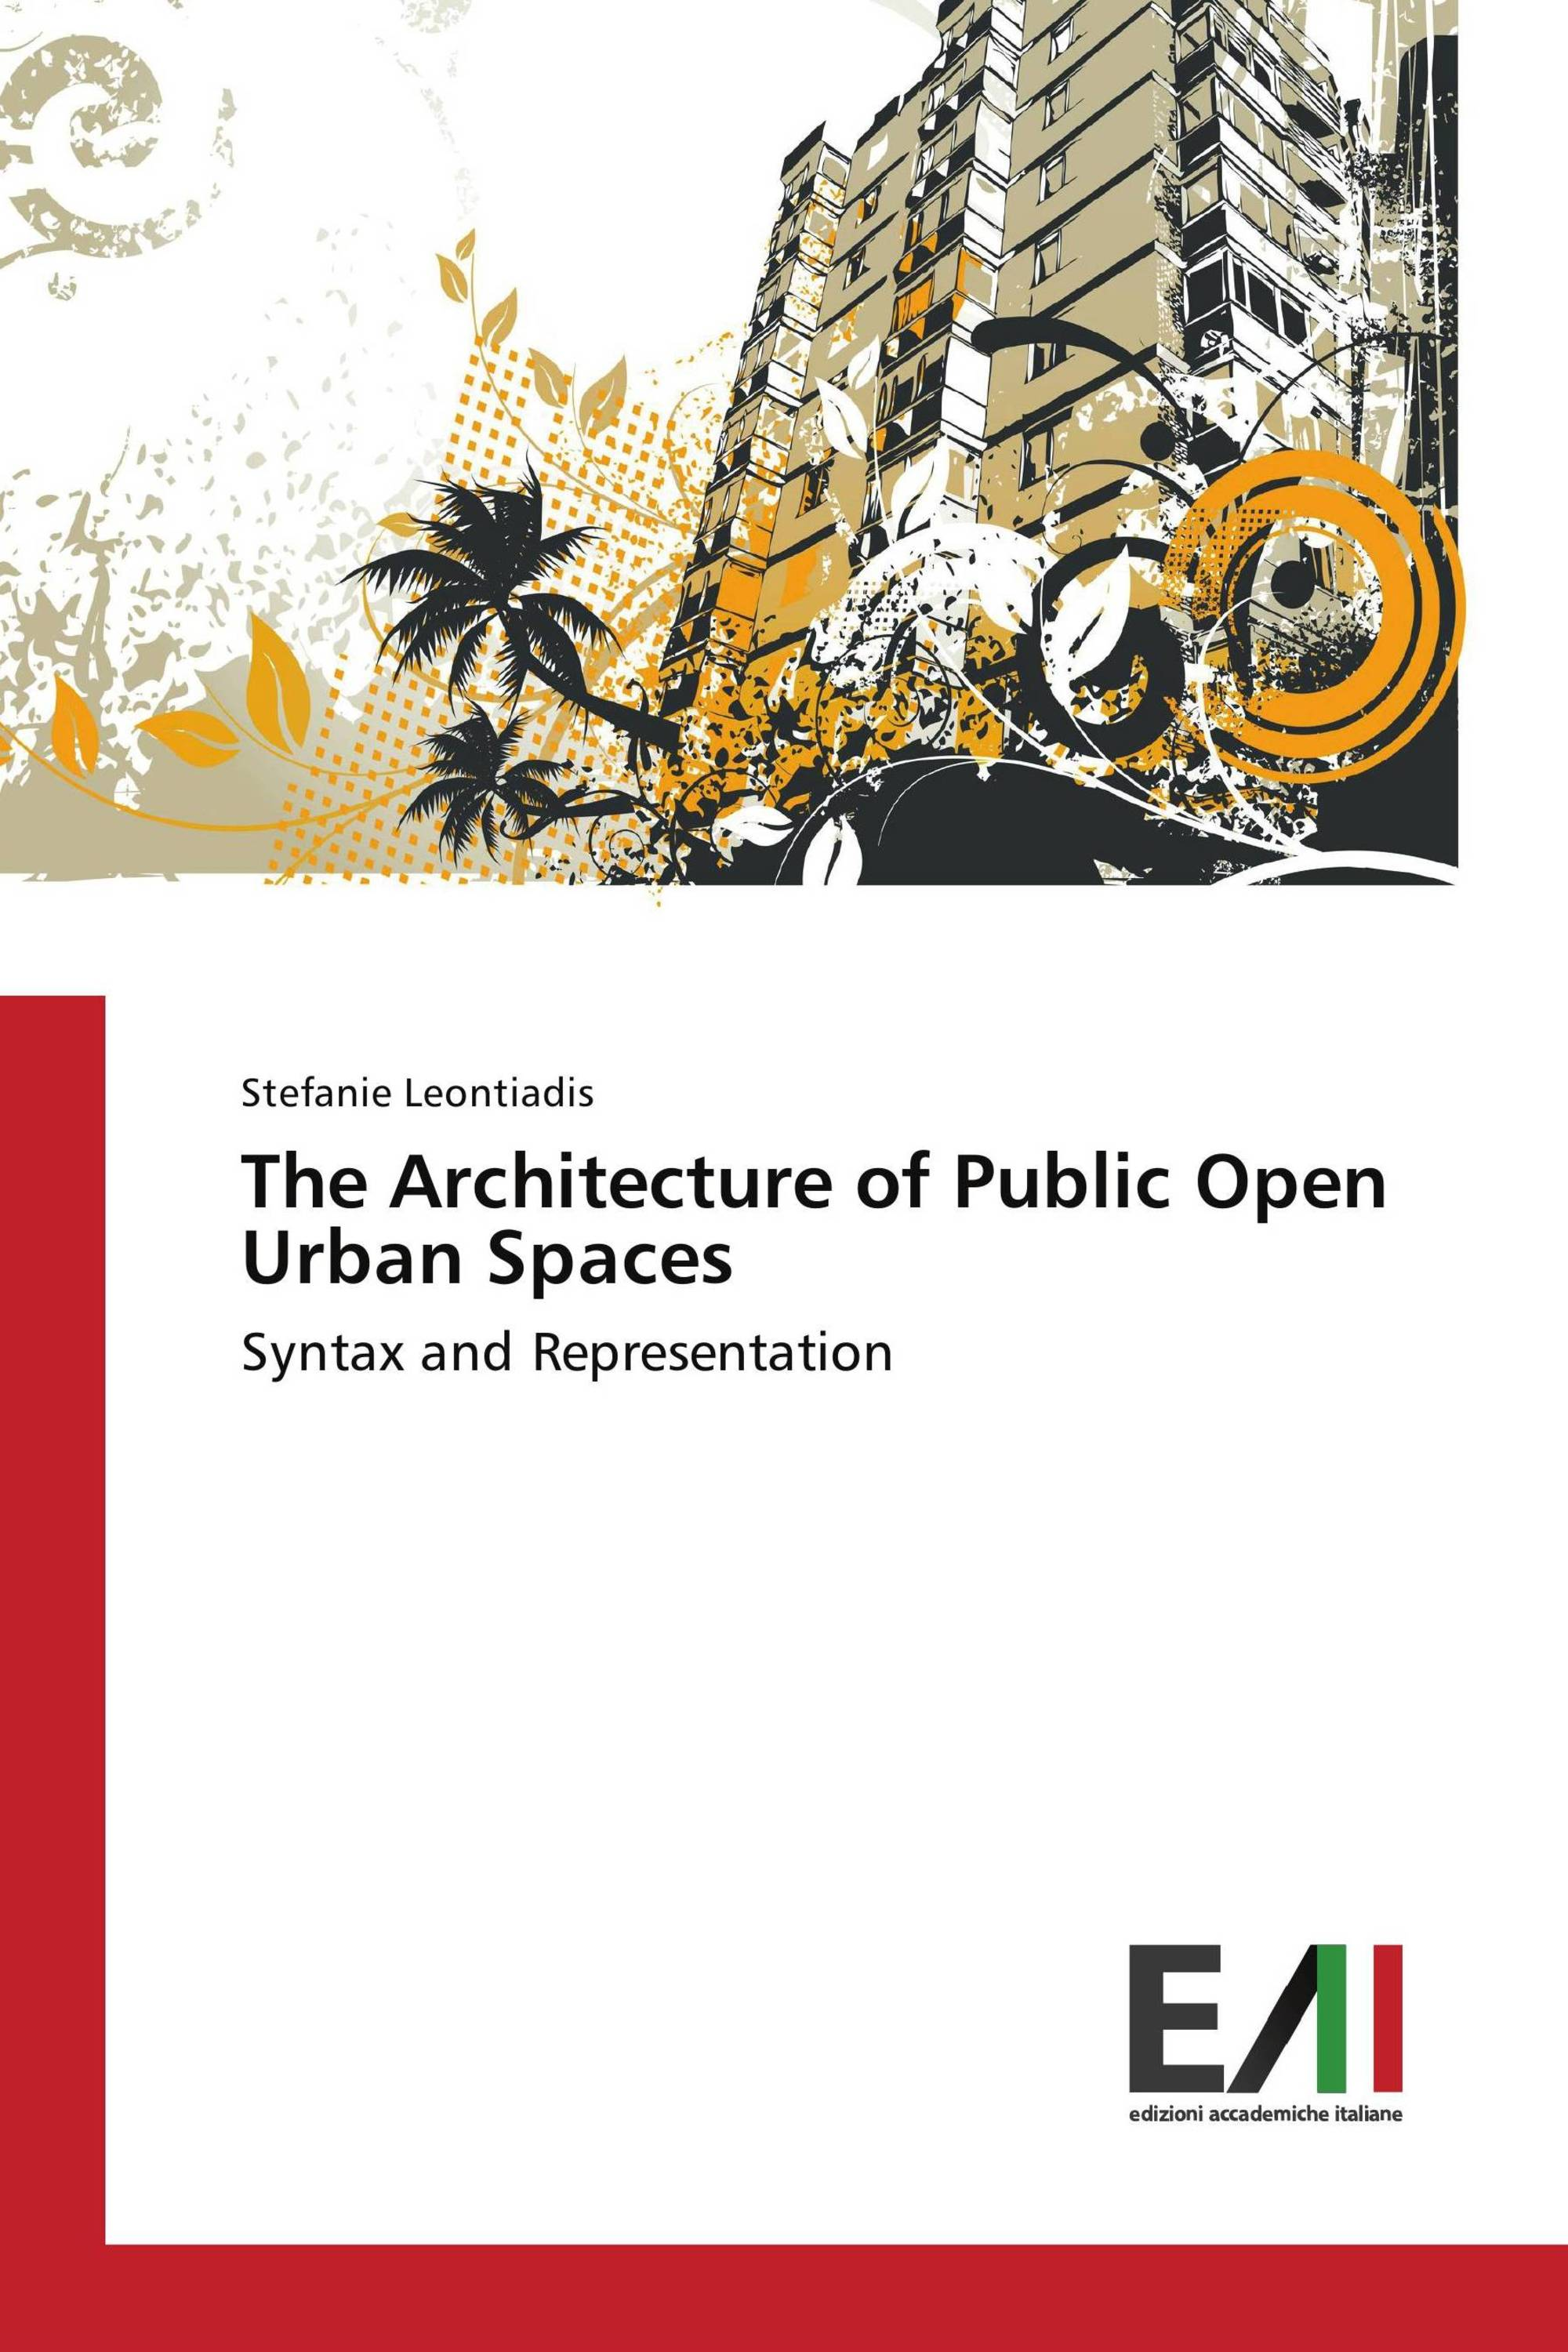 The Architecture of Public Open Urban Spaces